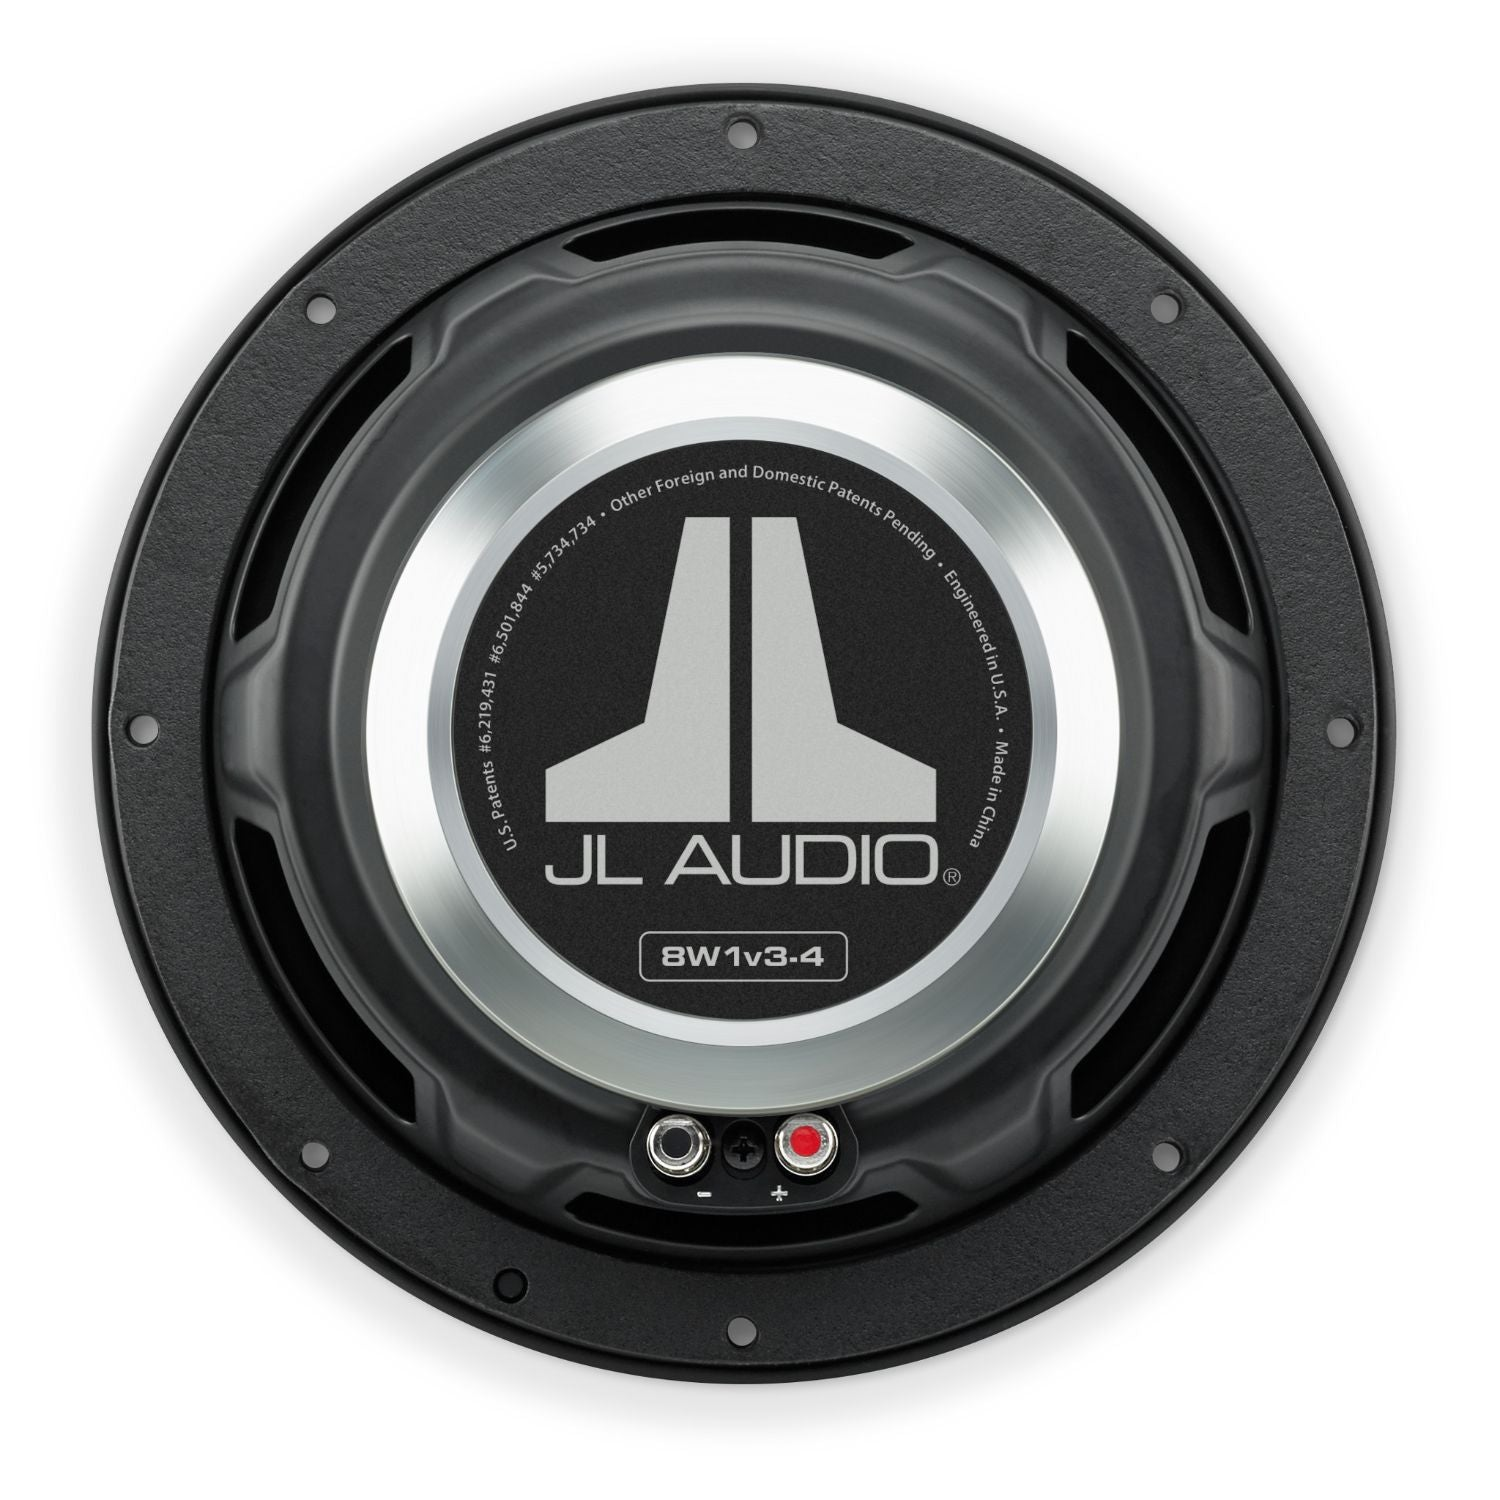 Rear of 8W1v3 Subwoofer Overhead